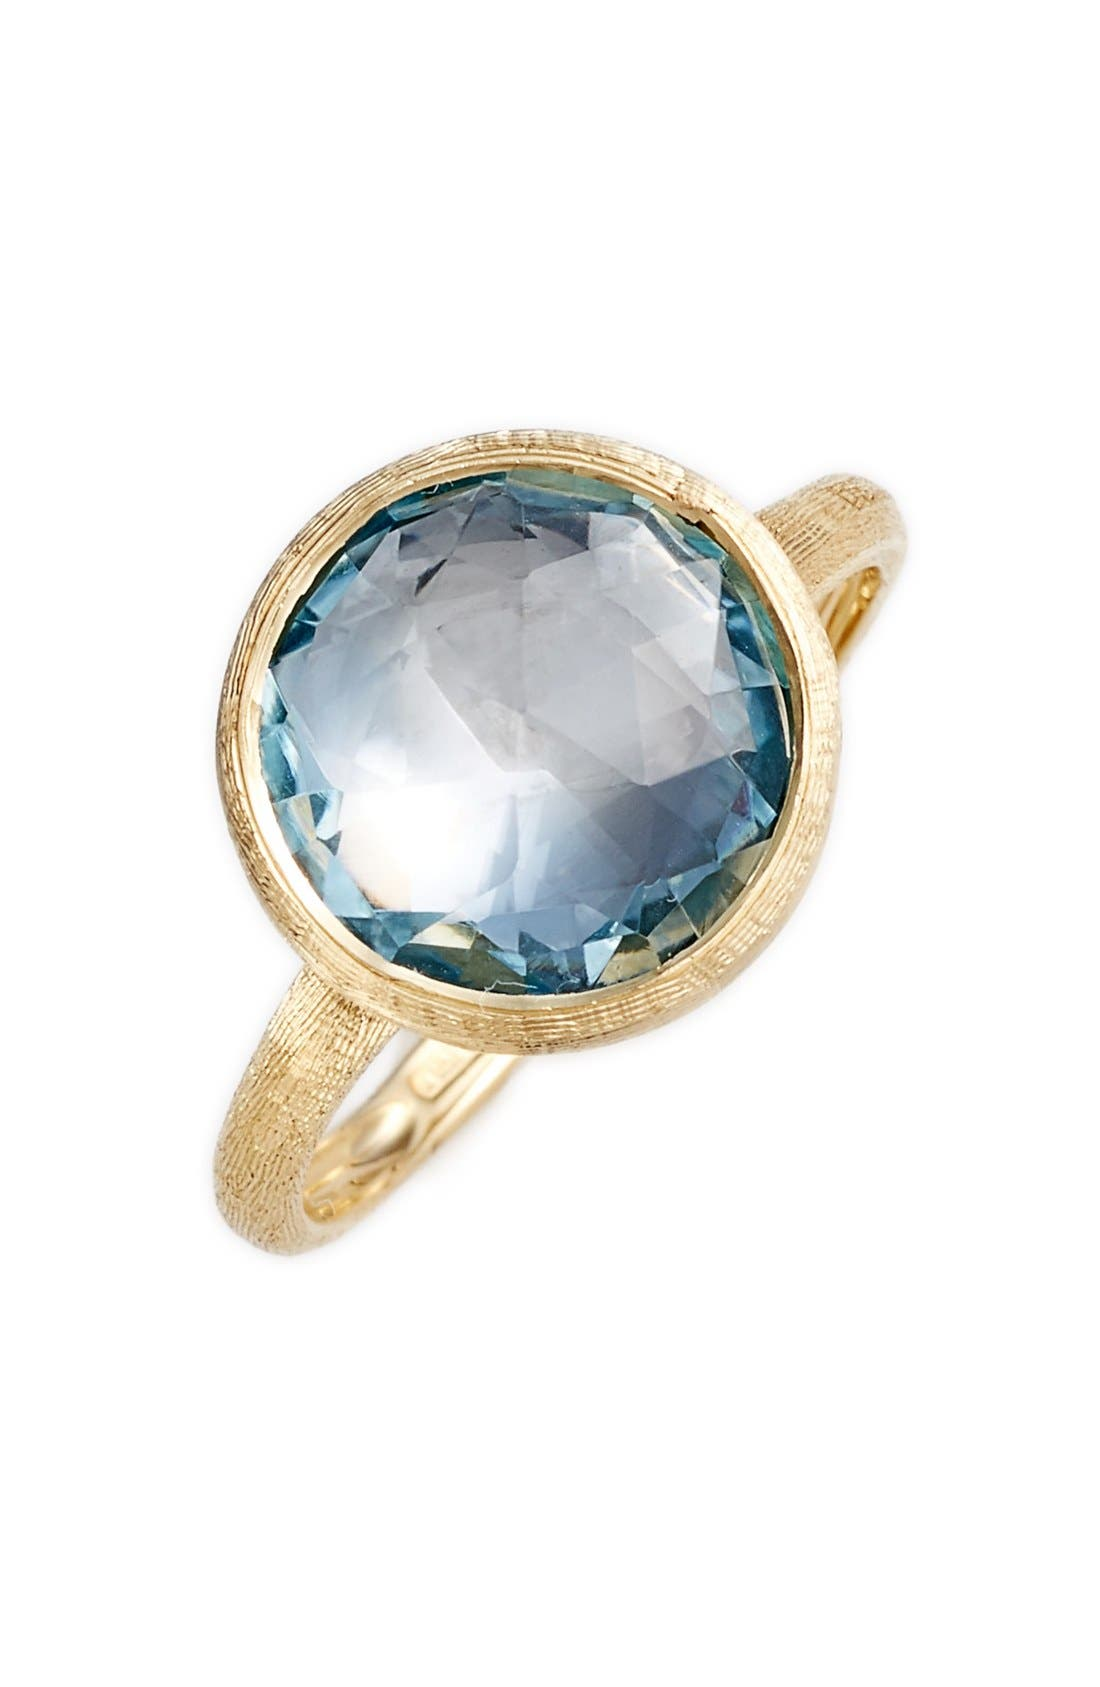 Stackable Semiprecious Stone Ring,                         Main,                         color, Yellow Gold/ Blue Topaz